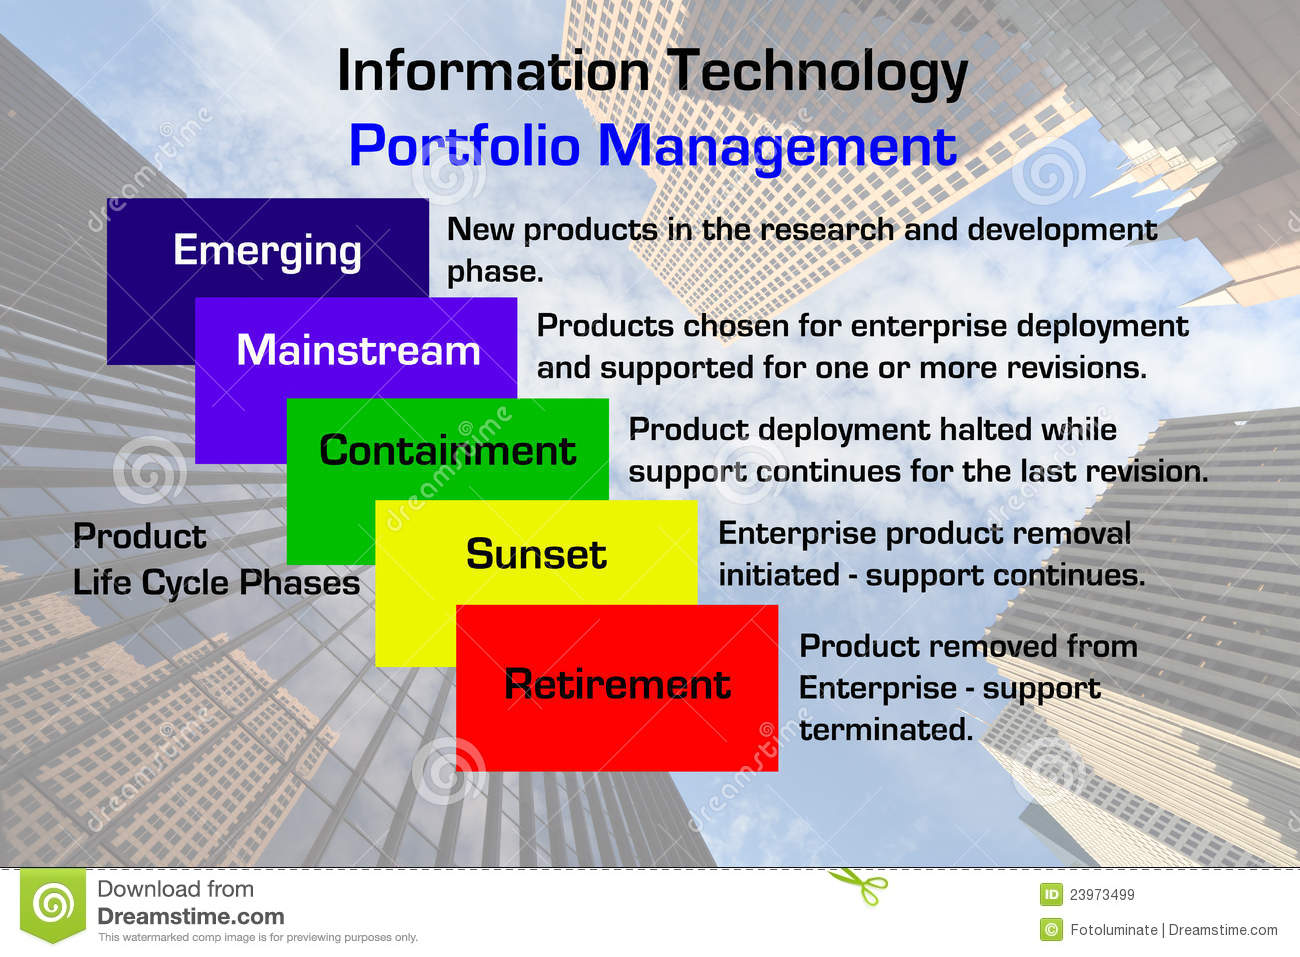 Technology Management Image: Information Technology Portfolio Management Royalty Free